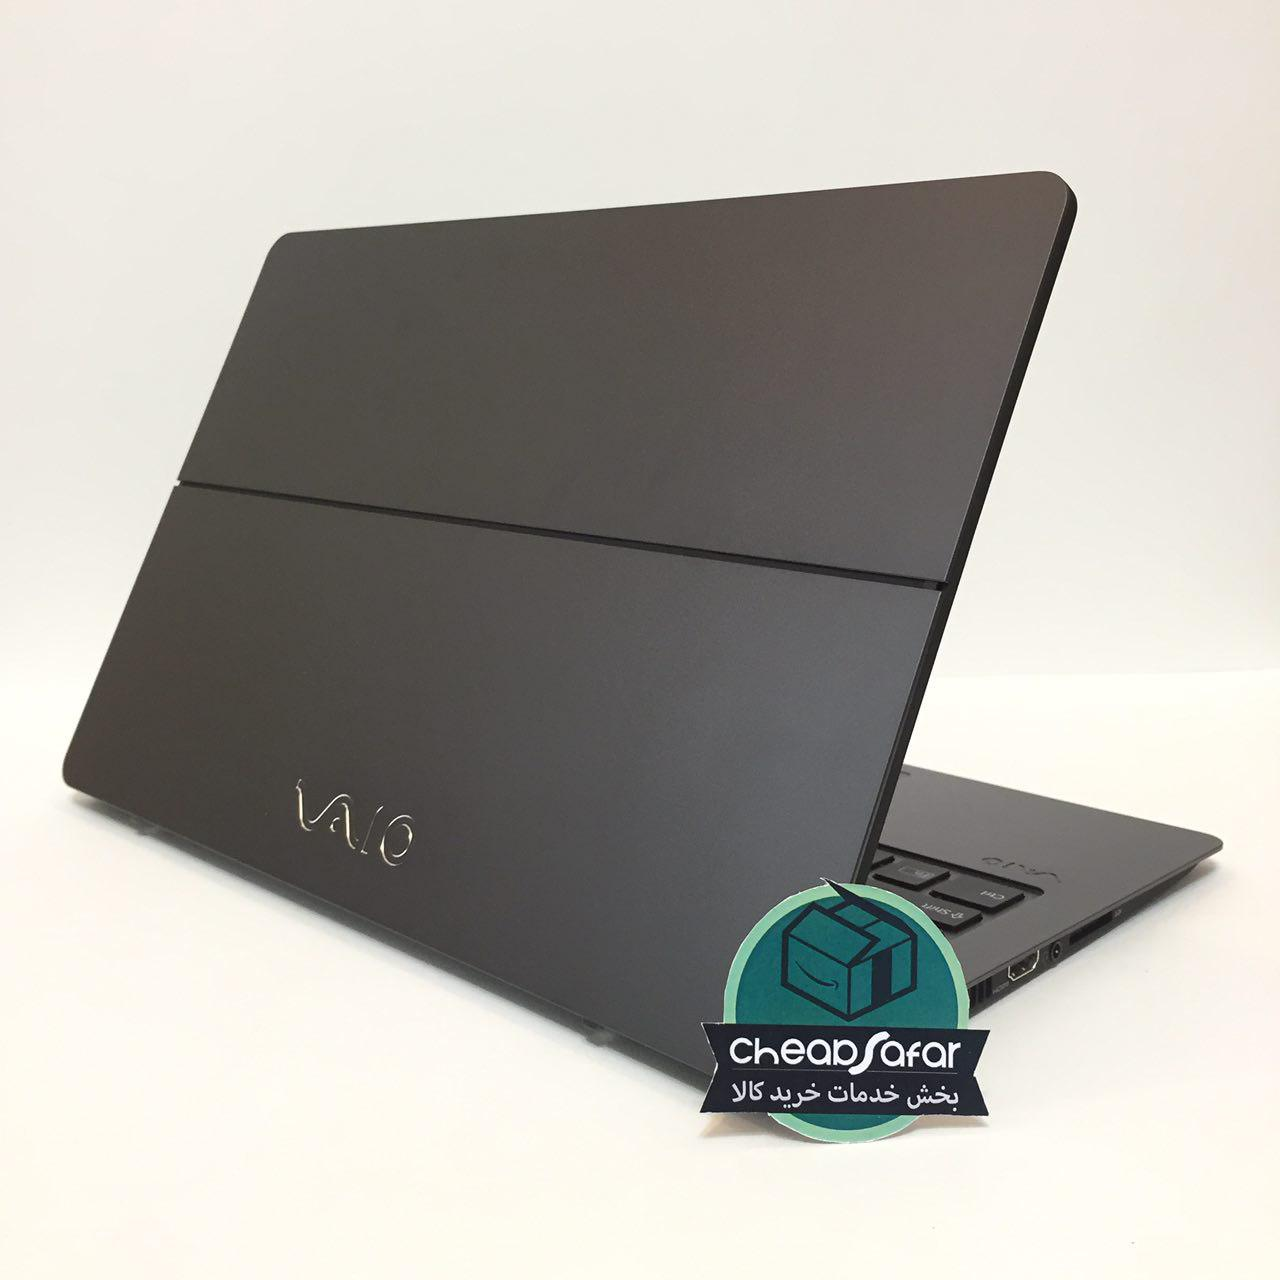 VAIO Z (flip) 2-in-1 Laptop (Intel Core i7-6567U, 16GB SSD, Windows 10 Pro)